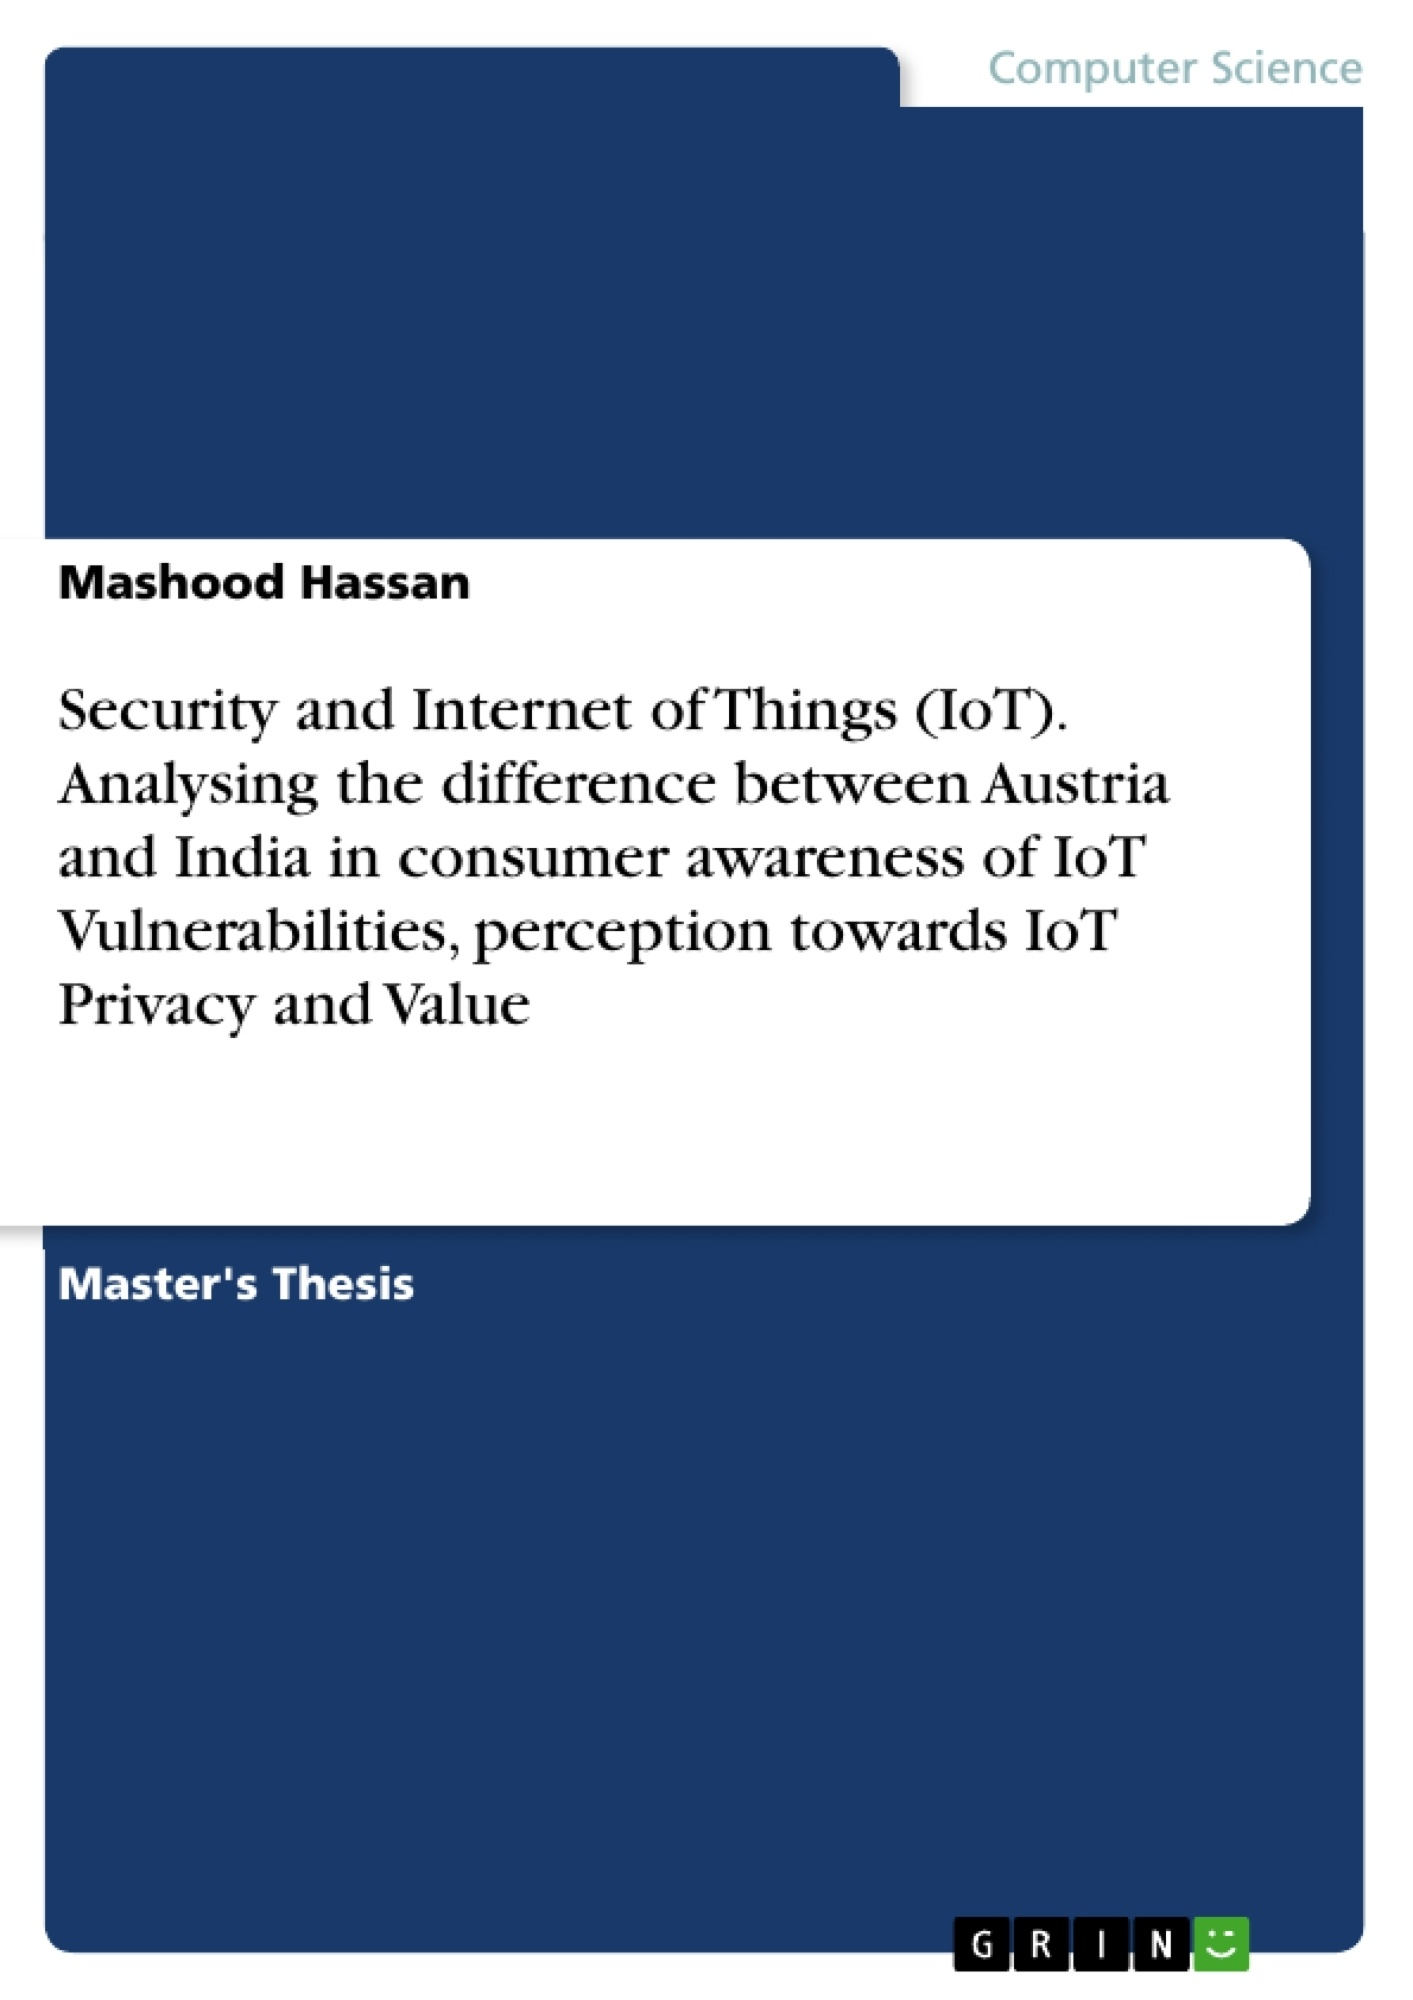 Title: Security and Internet of Things (IoT). Analysing the difference between Austria and India in consumer awareness of IoT Vulnerabilities, perception towards IoT Privacy and Value